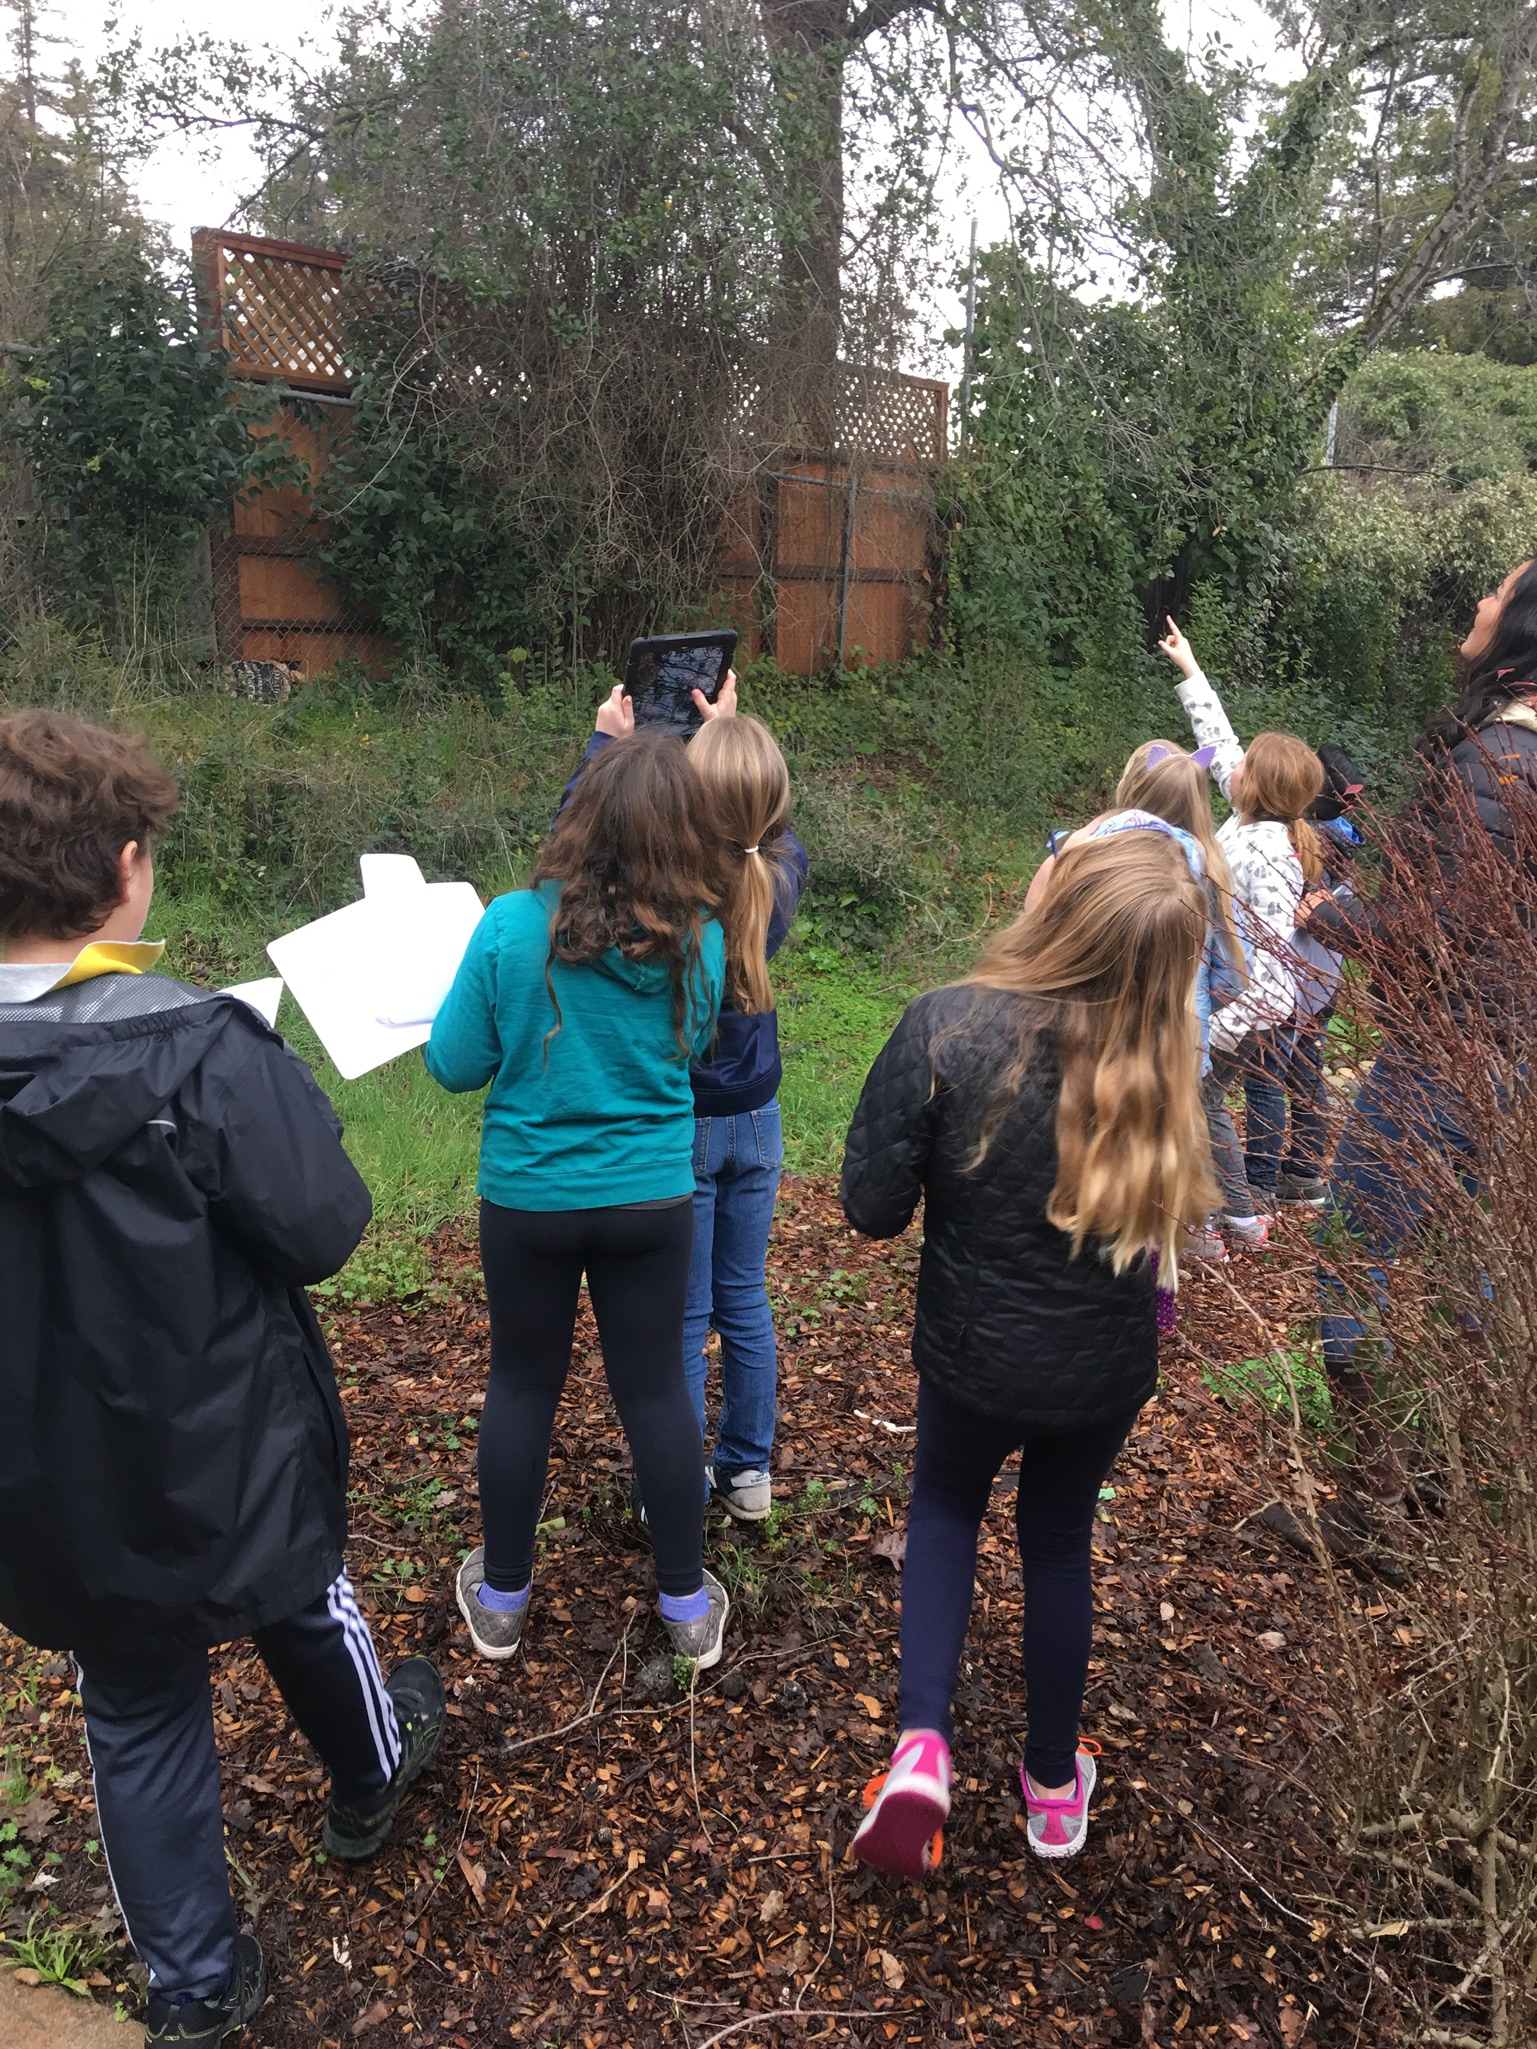 McNear students take pictures of local plants. They will use these images later to identify and document the trees, flowers, shrubs, and fungi growing on their campus.